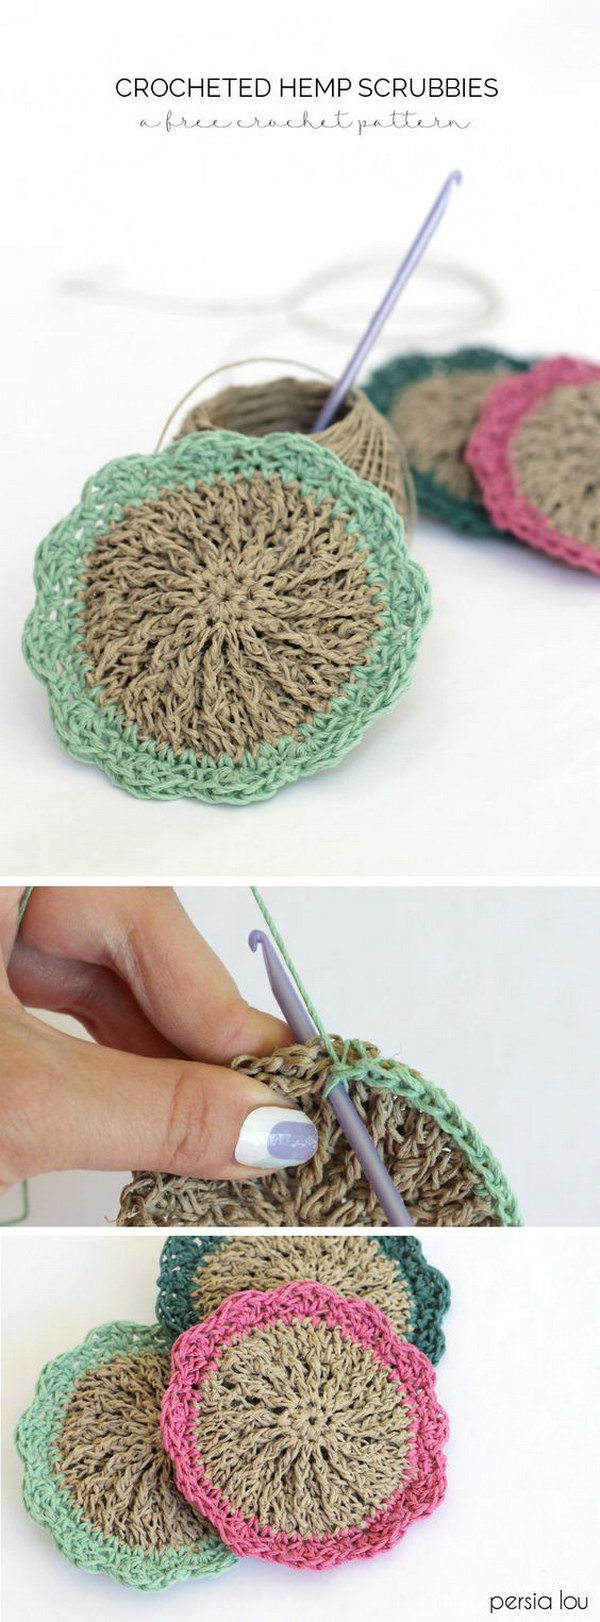 Knit Scrubbie Pattern : Crochet & Knitted Dishcloth Patterns - Hative